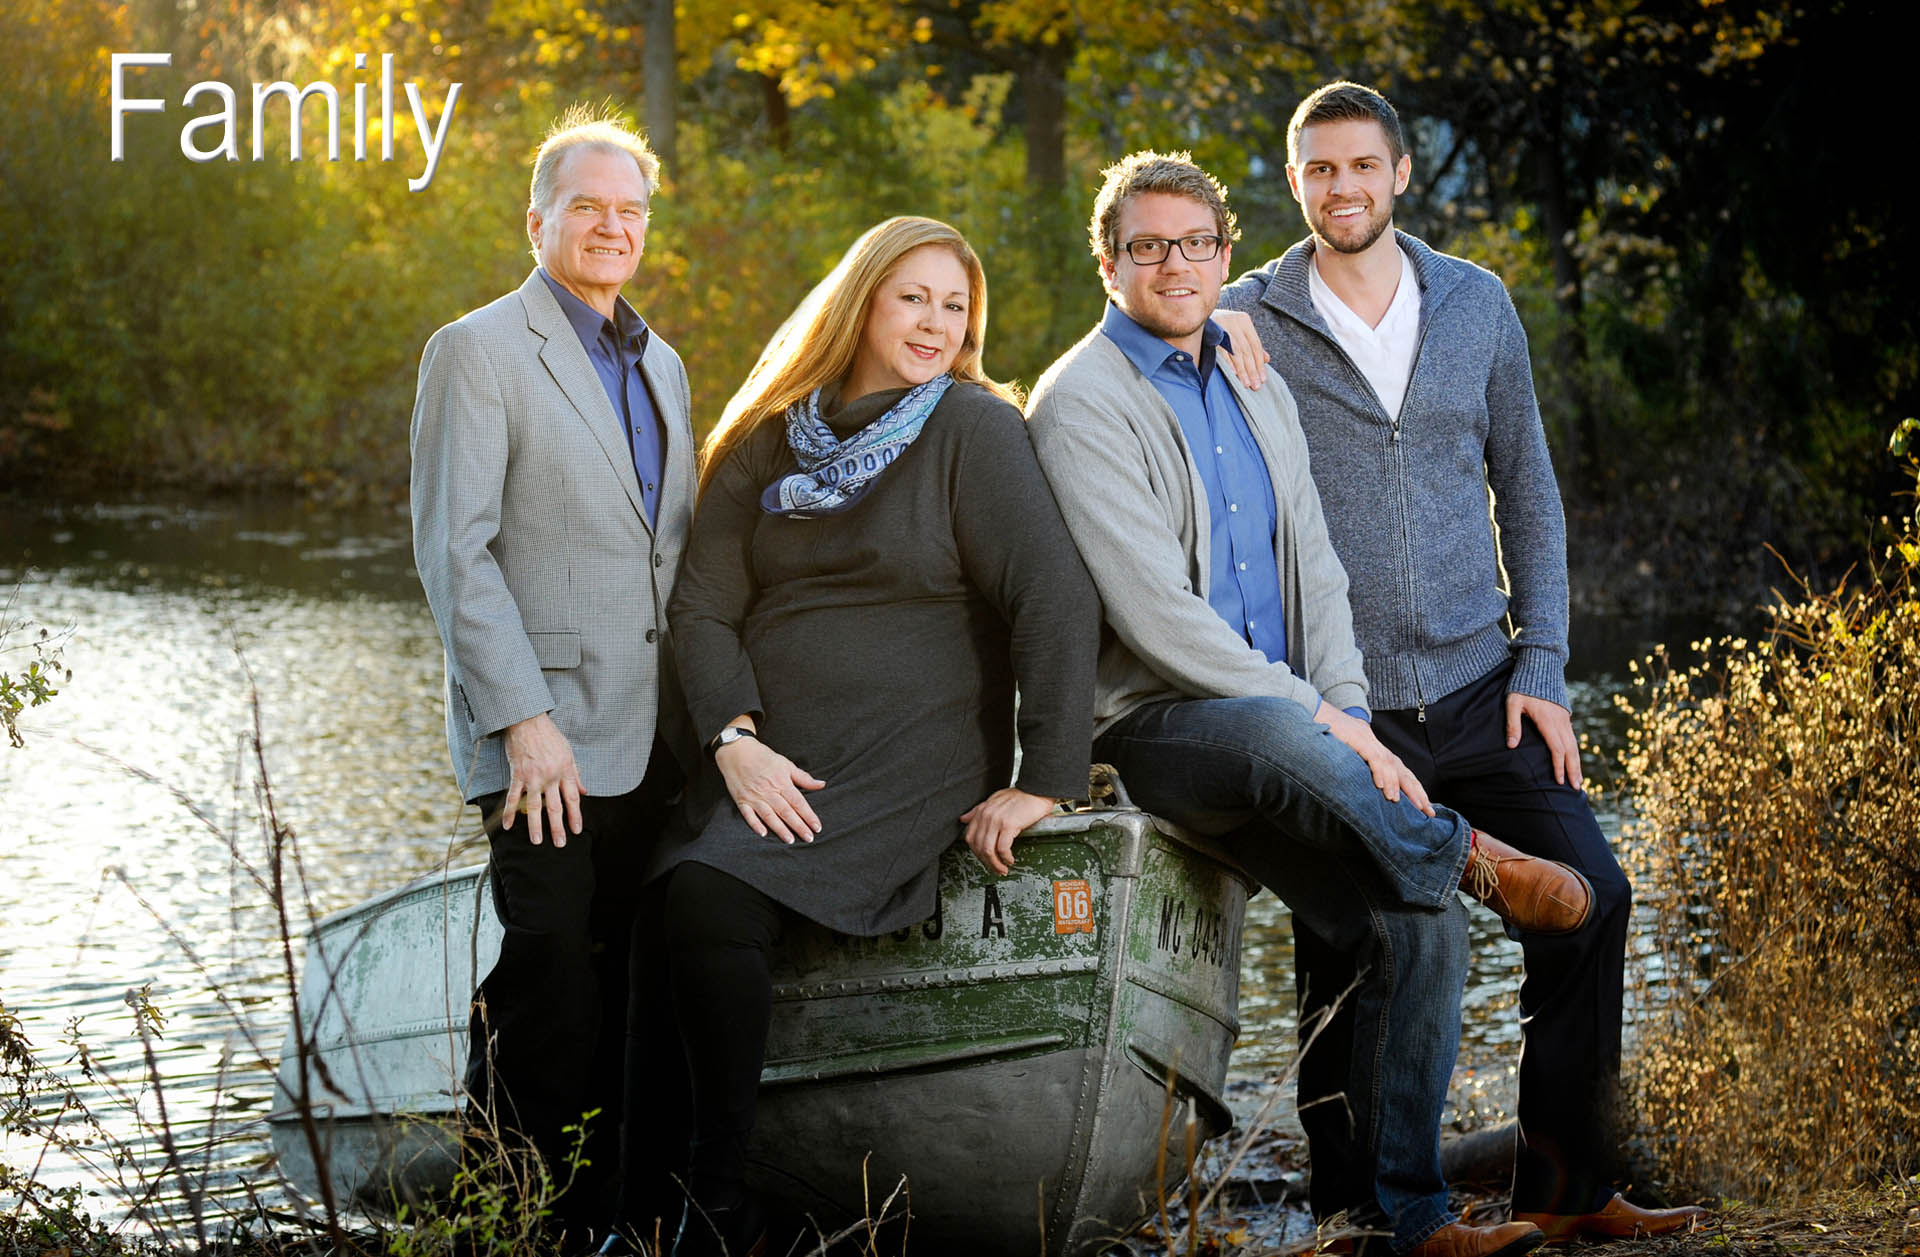 A metro Detroit family features a fun family photo with three generations created by affordable, creative family photographer who takes creative family photos in the Metro Detroit area.